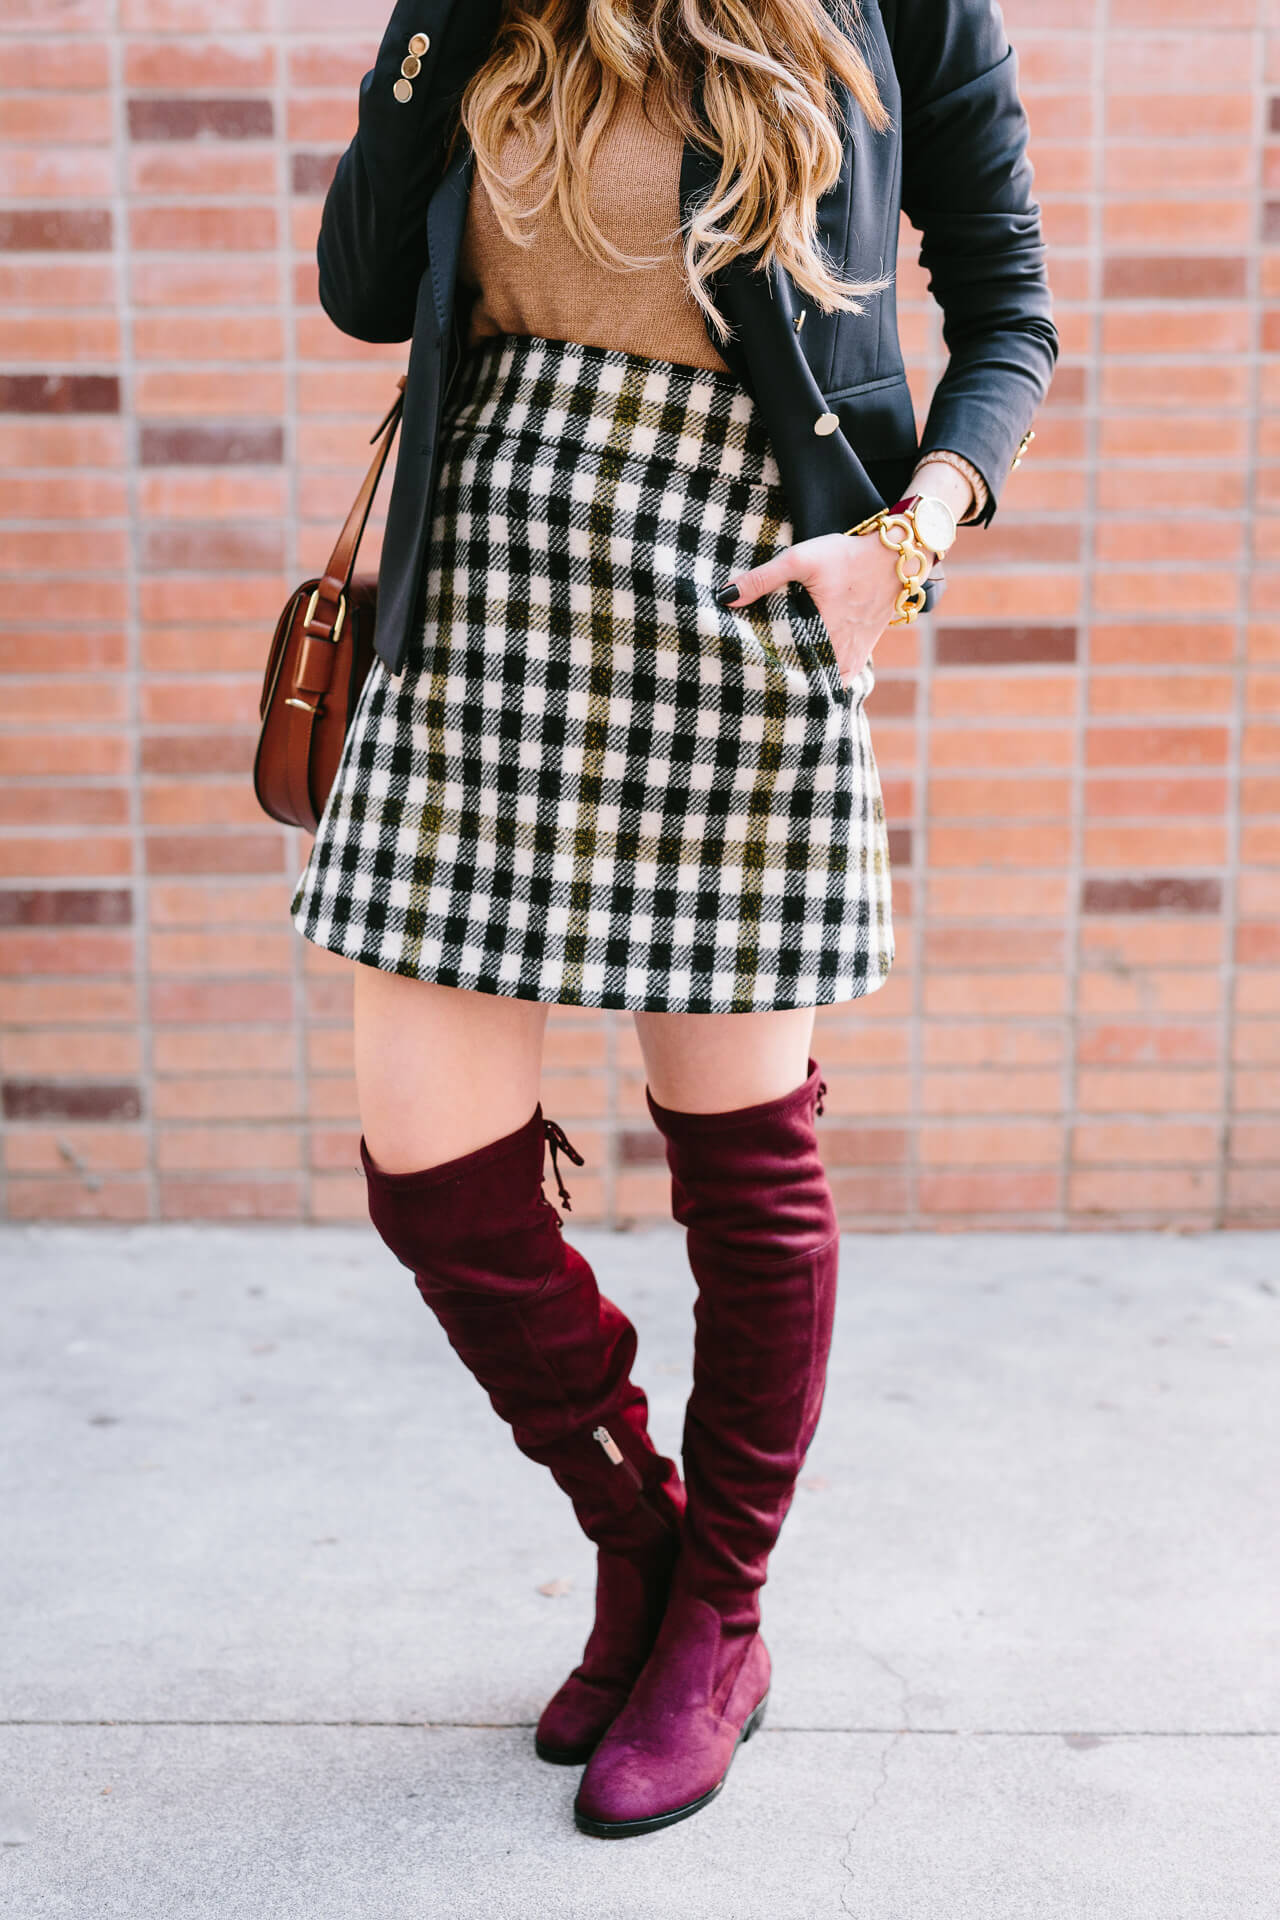 tweed skirt with over the knee boots